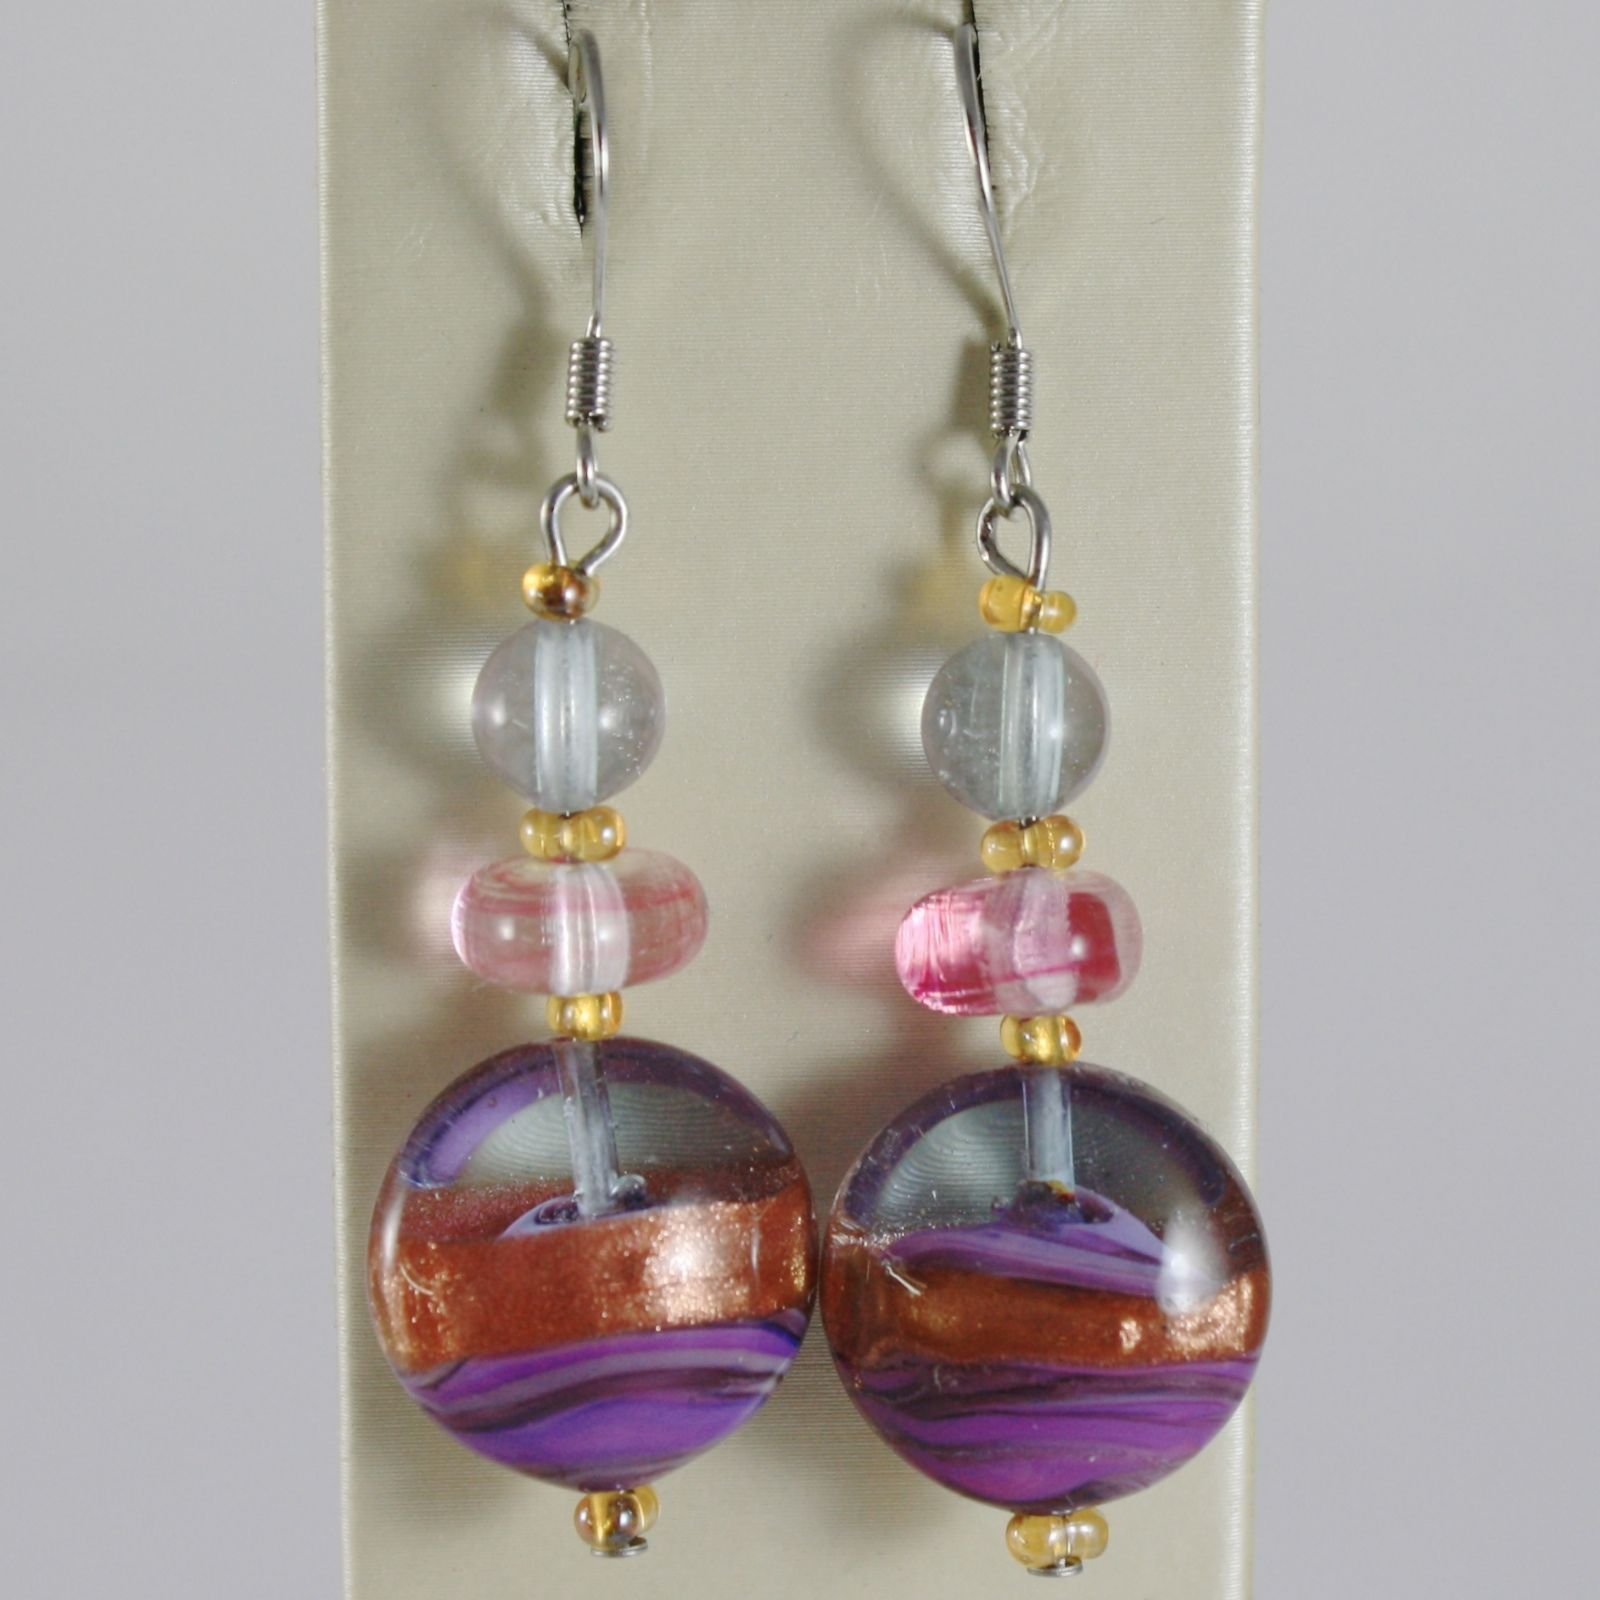 ANTICA MURRINA VENEZIA PENDANT EARRINGS PINK PURPLE FINELY STRIPED DISC